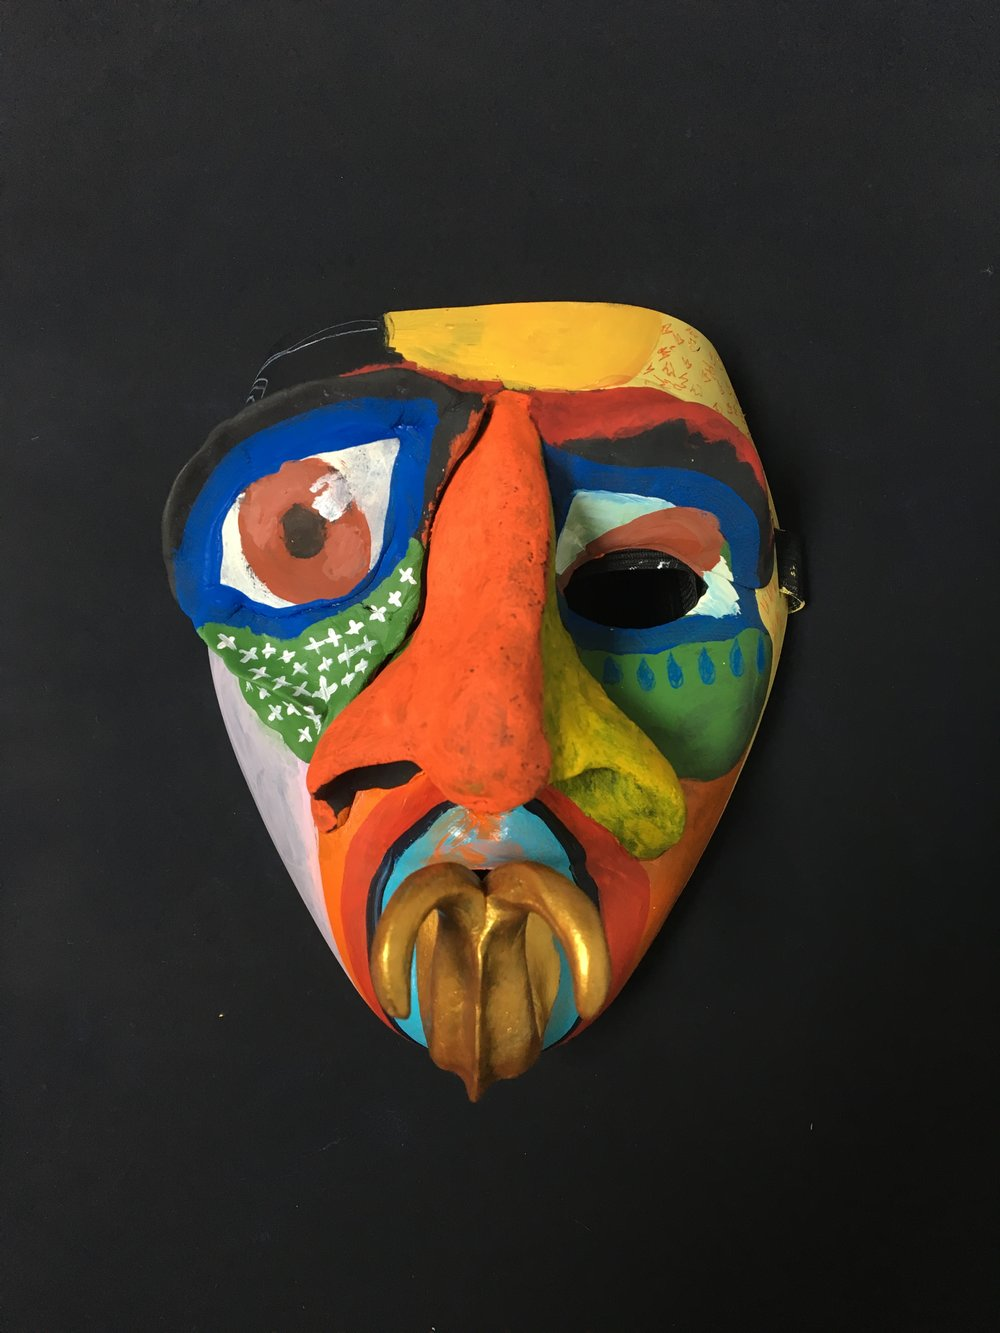 The finished Mask